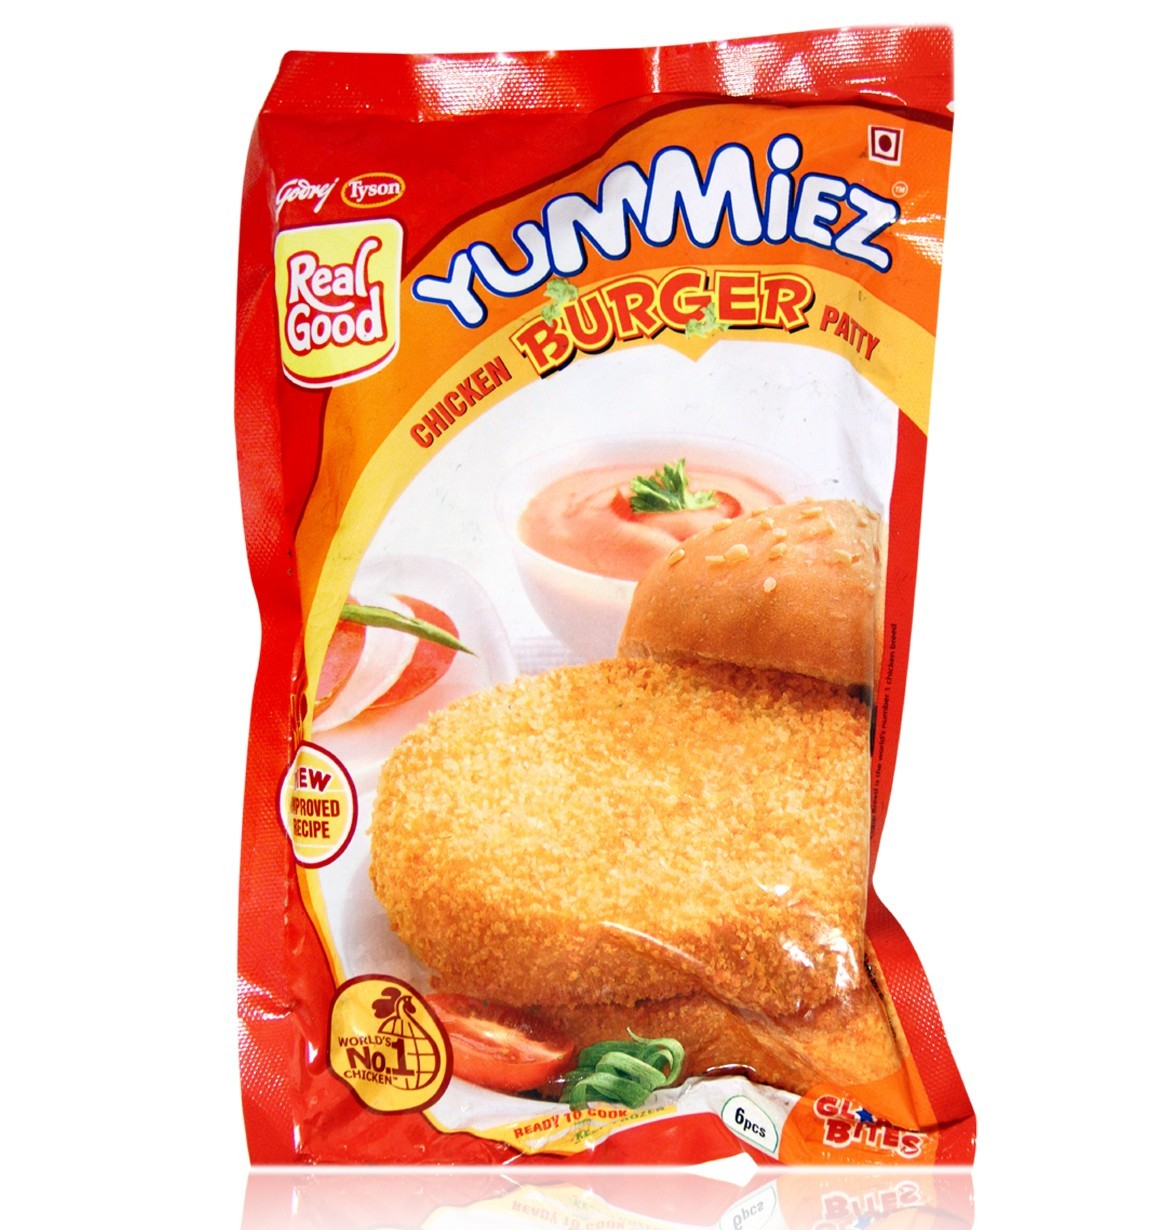 YUMMIEZ CHICKEN BURGER PATTY